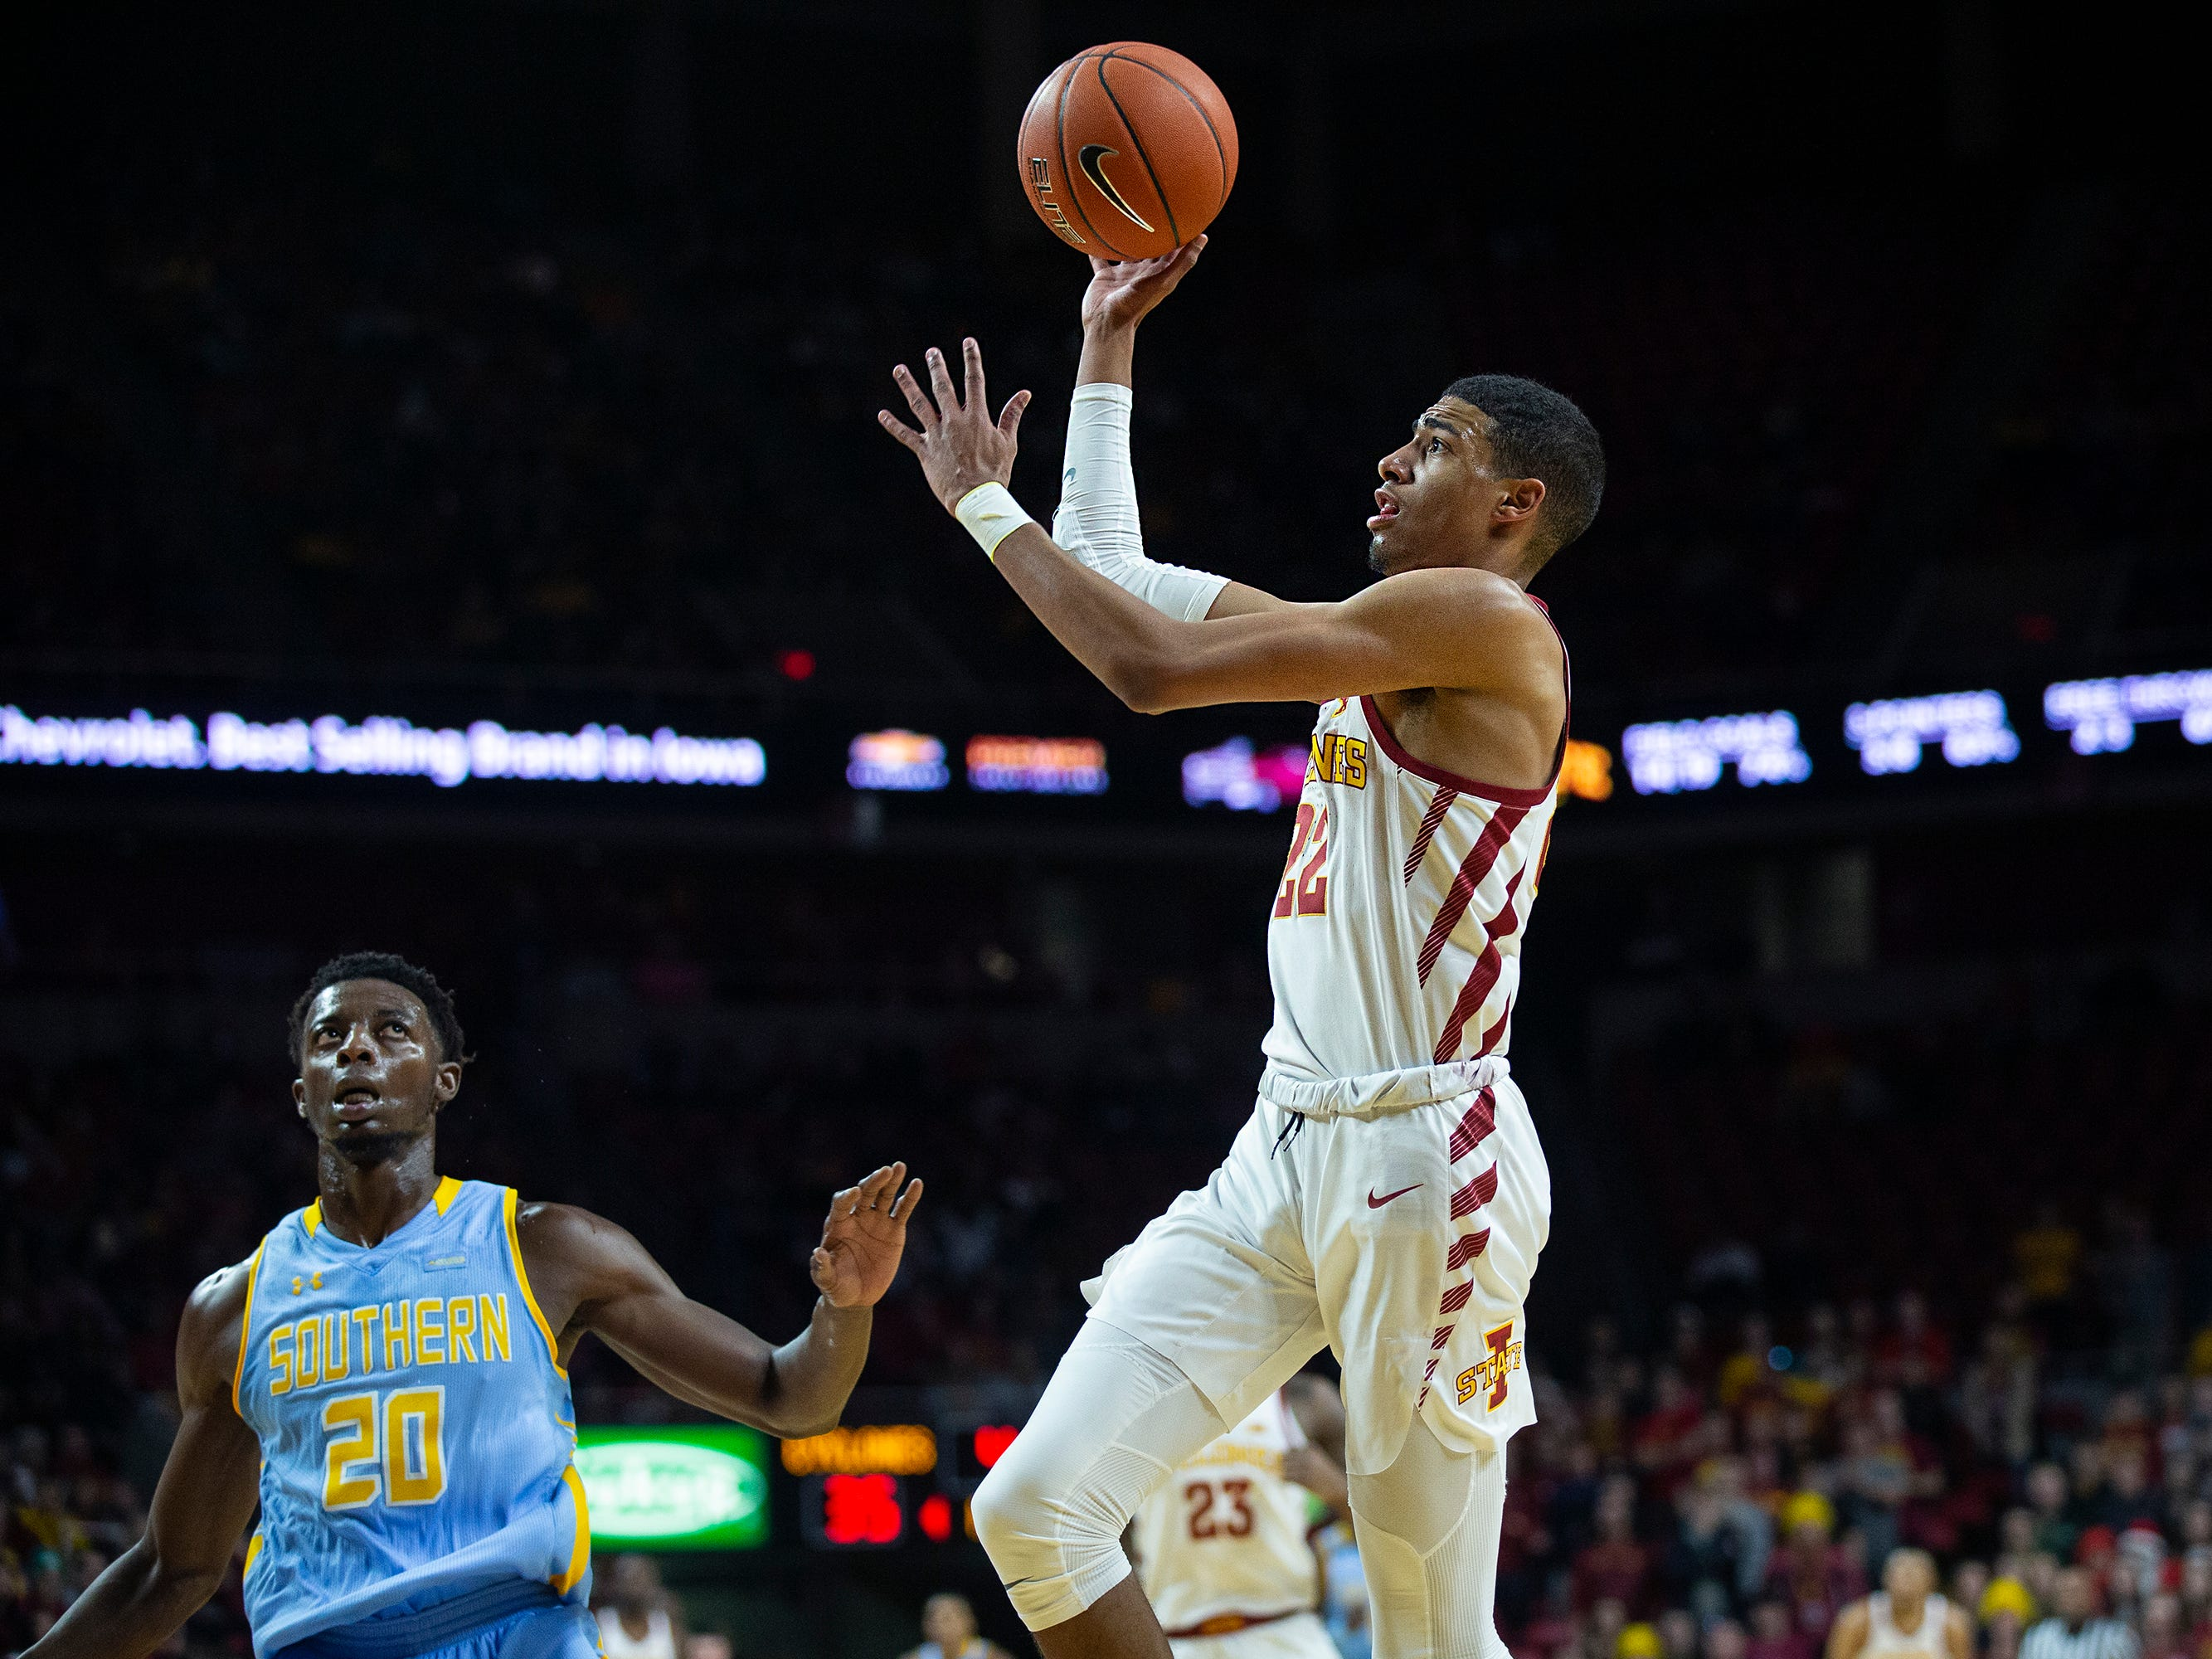 Iowa State's Tyrese Haliburton passes the ball during the Iowa State men's basketball game against Southern on Sunday, Dec. 9, 2018, in Hilton Coliseum.